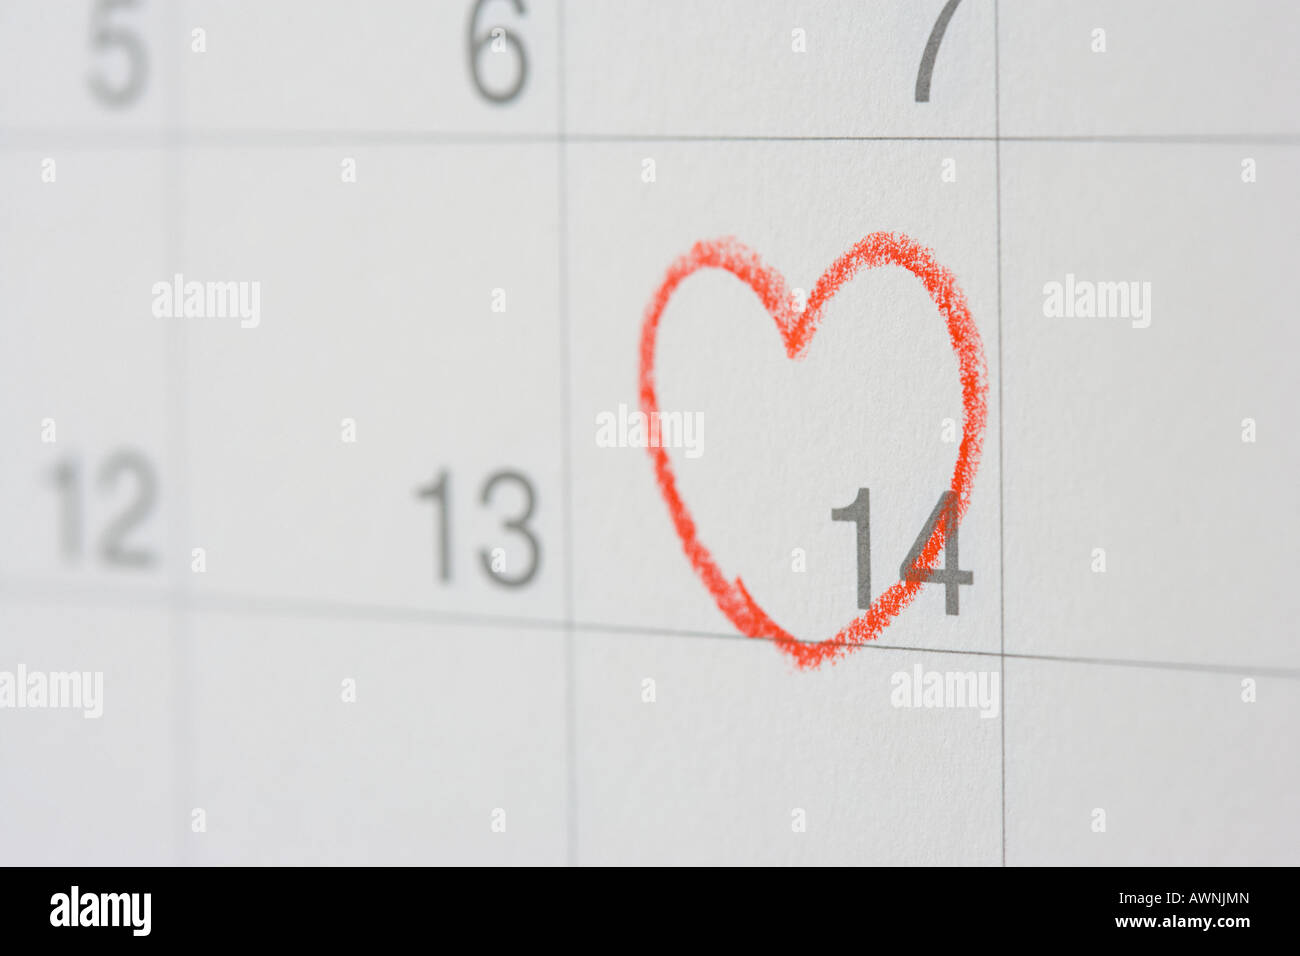 Number fourteen with a heart round it - Stock Image